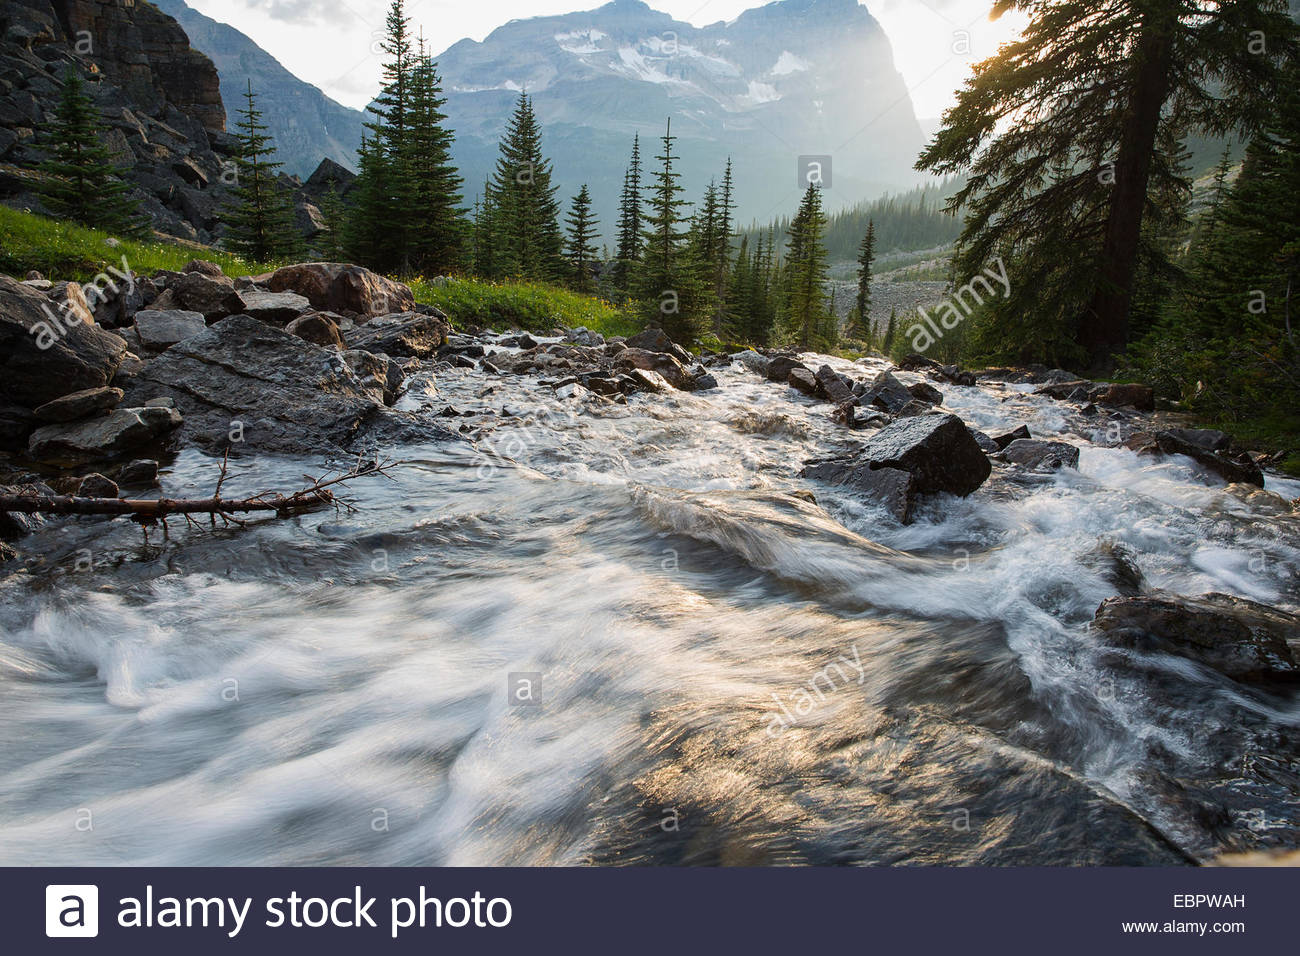 Rushing Kicking Horse river below mountain - Stock Image